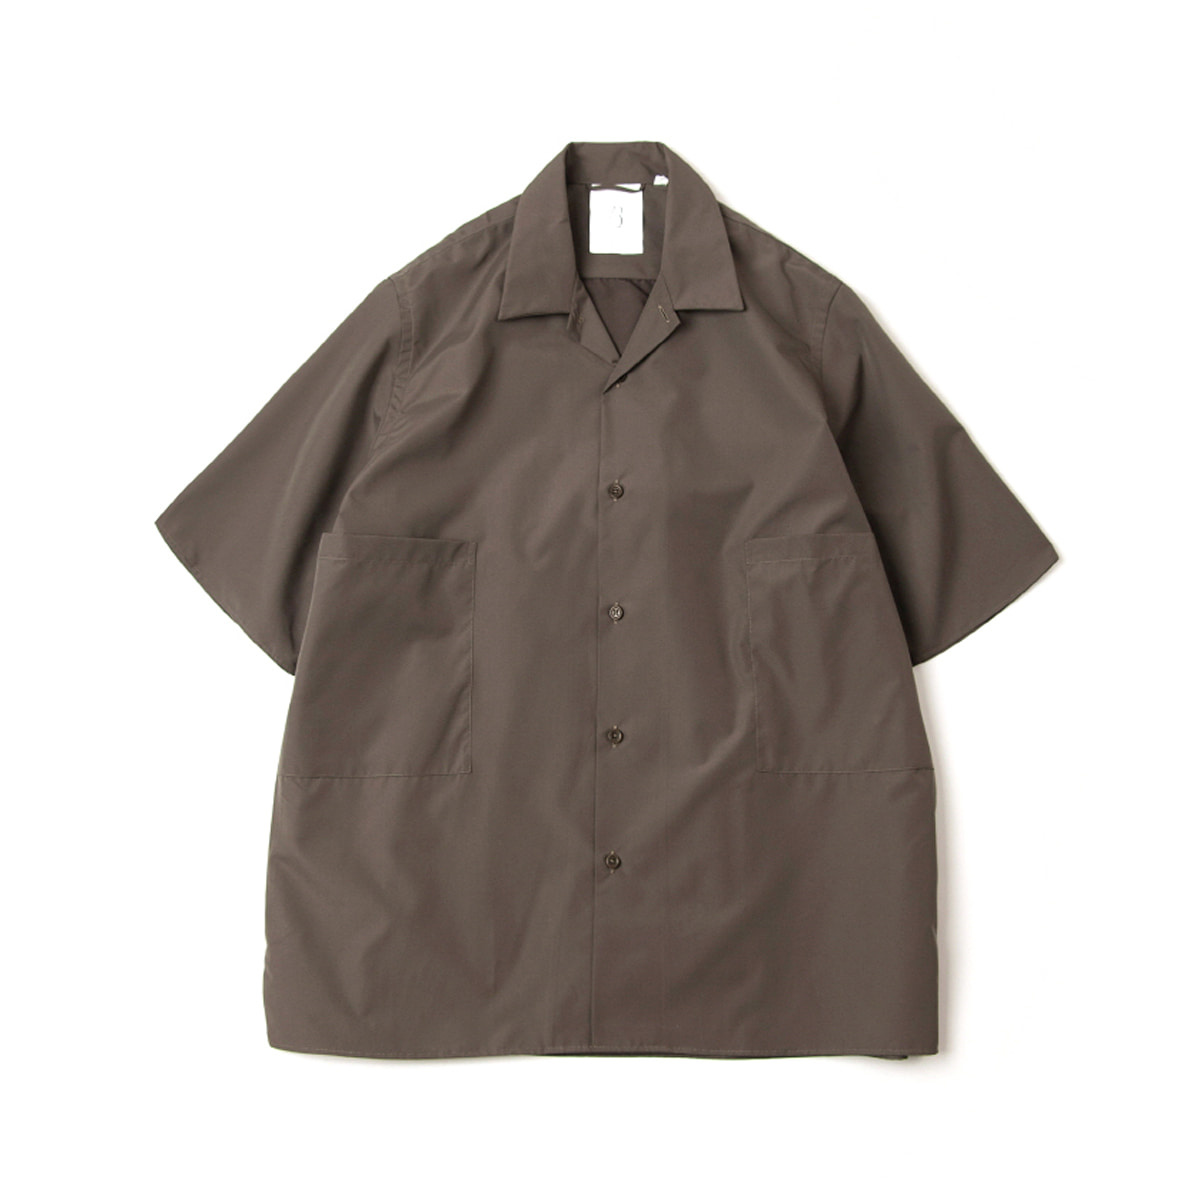 [BROWNYARD] CONVERTIBLE COLLAR SHIRTS 02 'OLIVE'